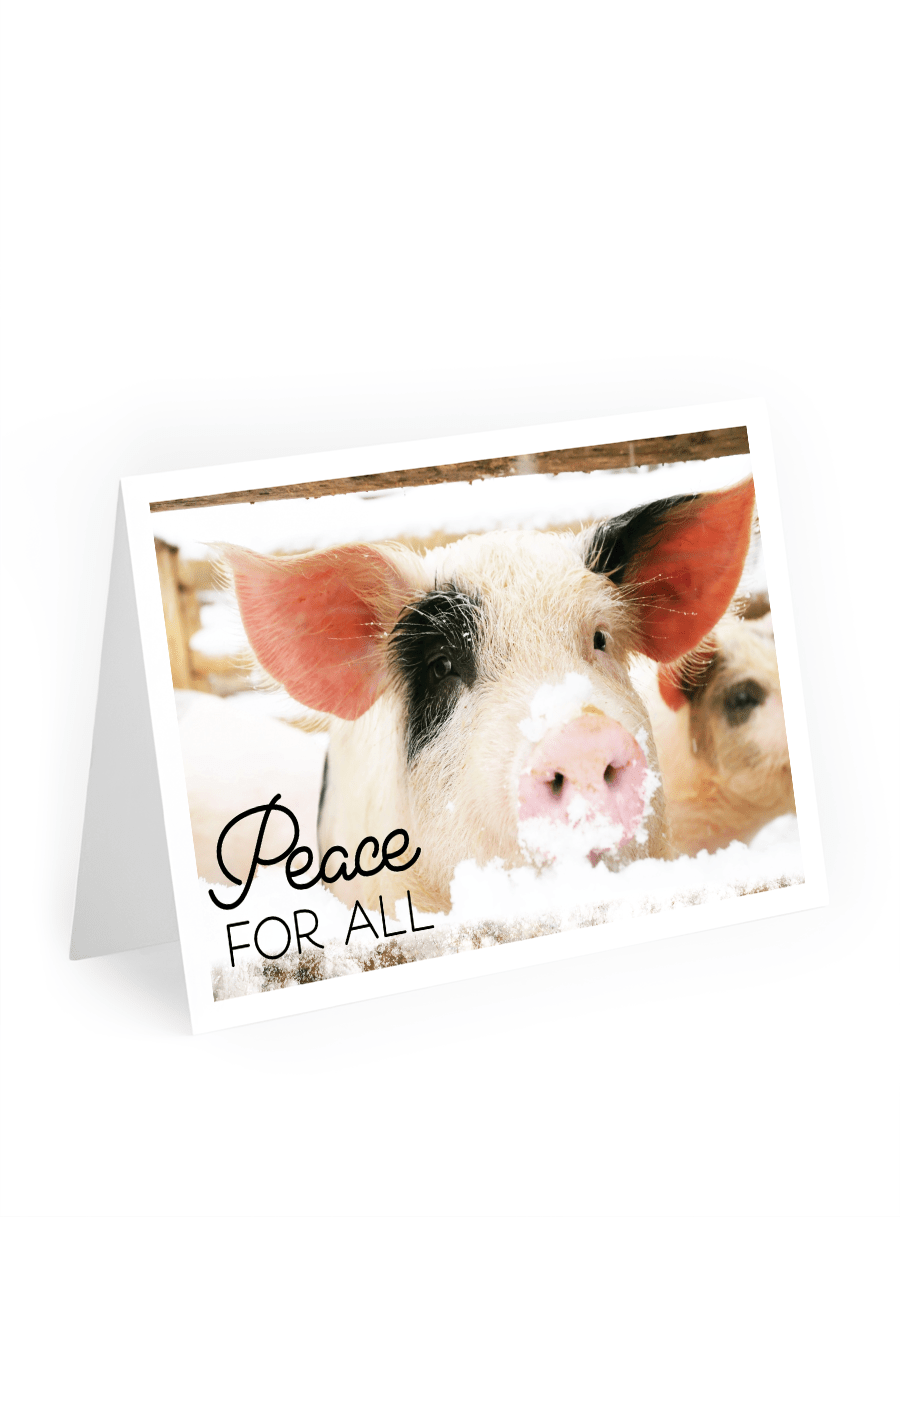 2020 Mercy For Animals Holiday Cards, Piglet